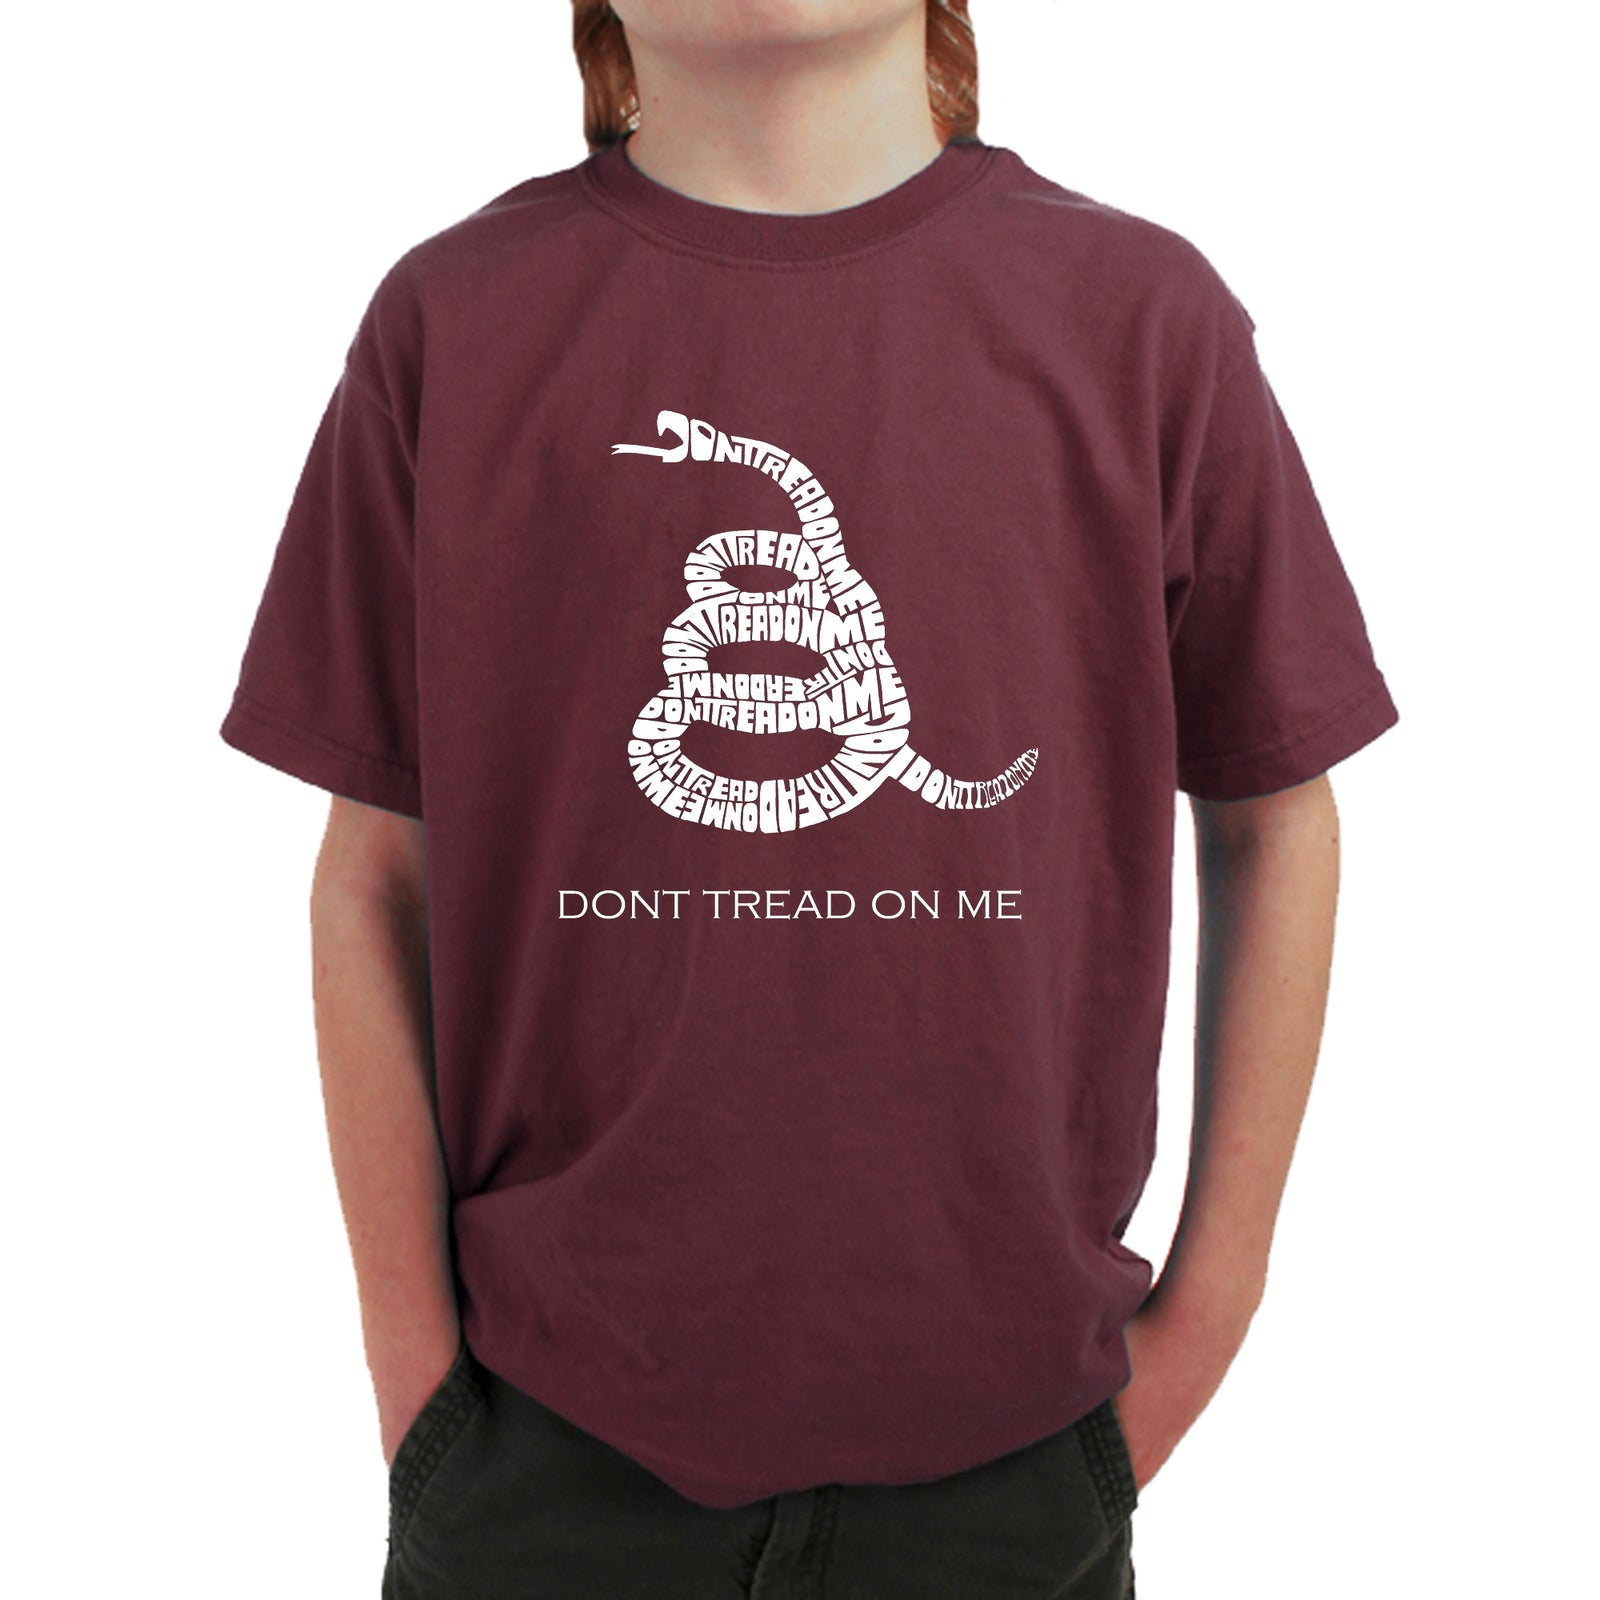 Boy's T-shirt - DONT TREAD ON ME